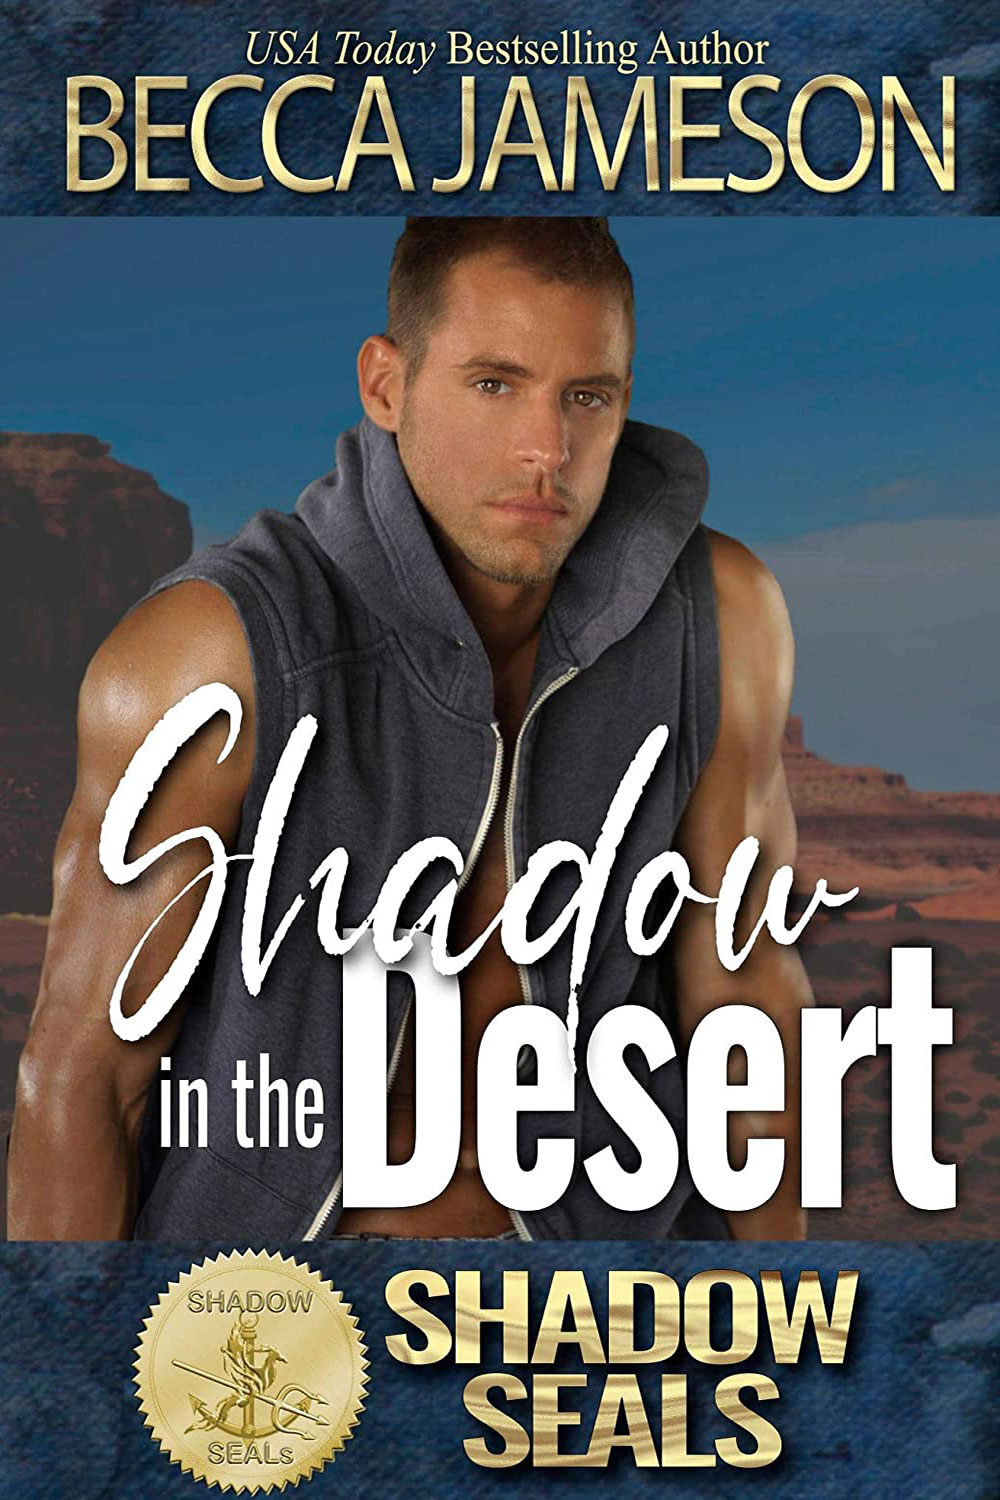 Shadow in the Desert by Becca Jameson